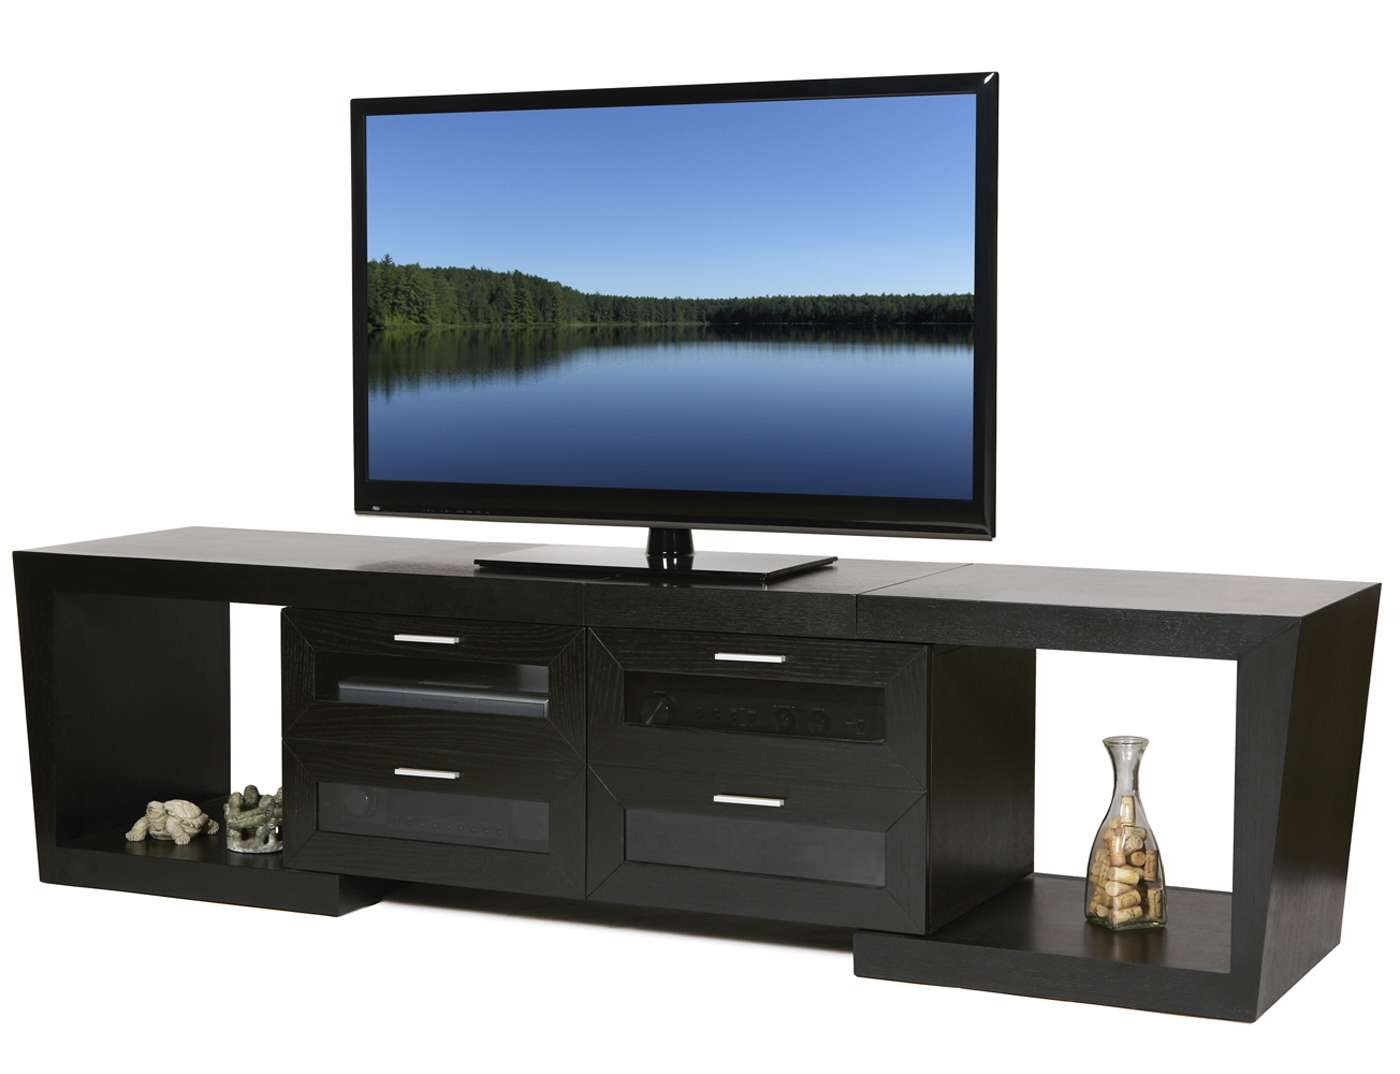 Rectangle Black Narrow Short Tv Stand With Square Shelves And Pertaining To Modern Tv Stands For Flat Screens (View 7 of 15)